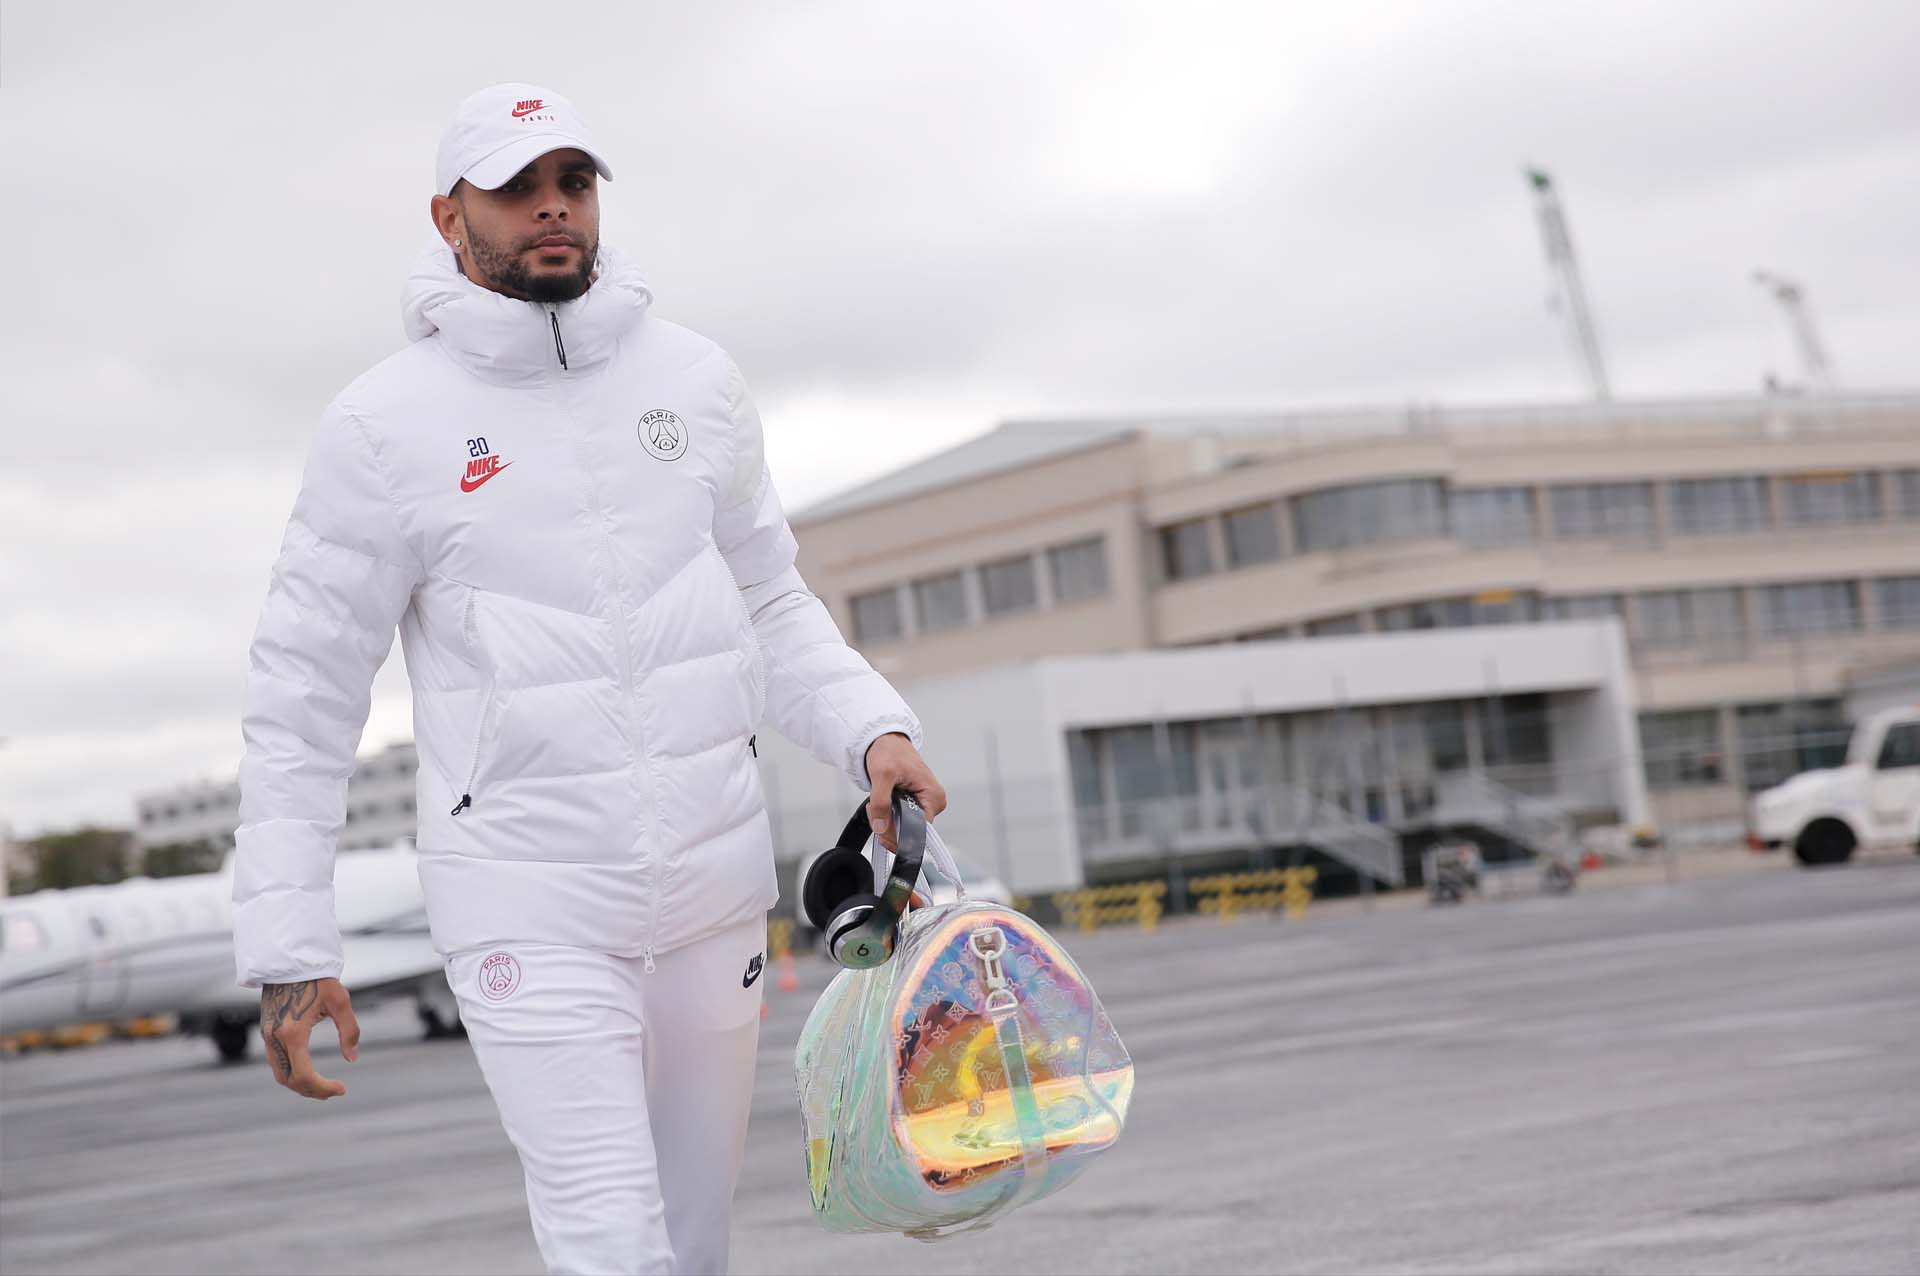 psg travel in new all white nike